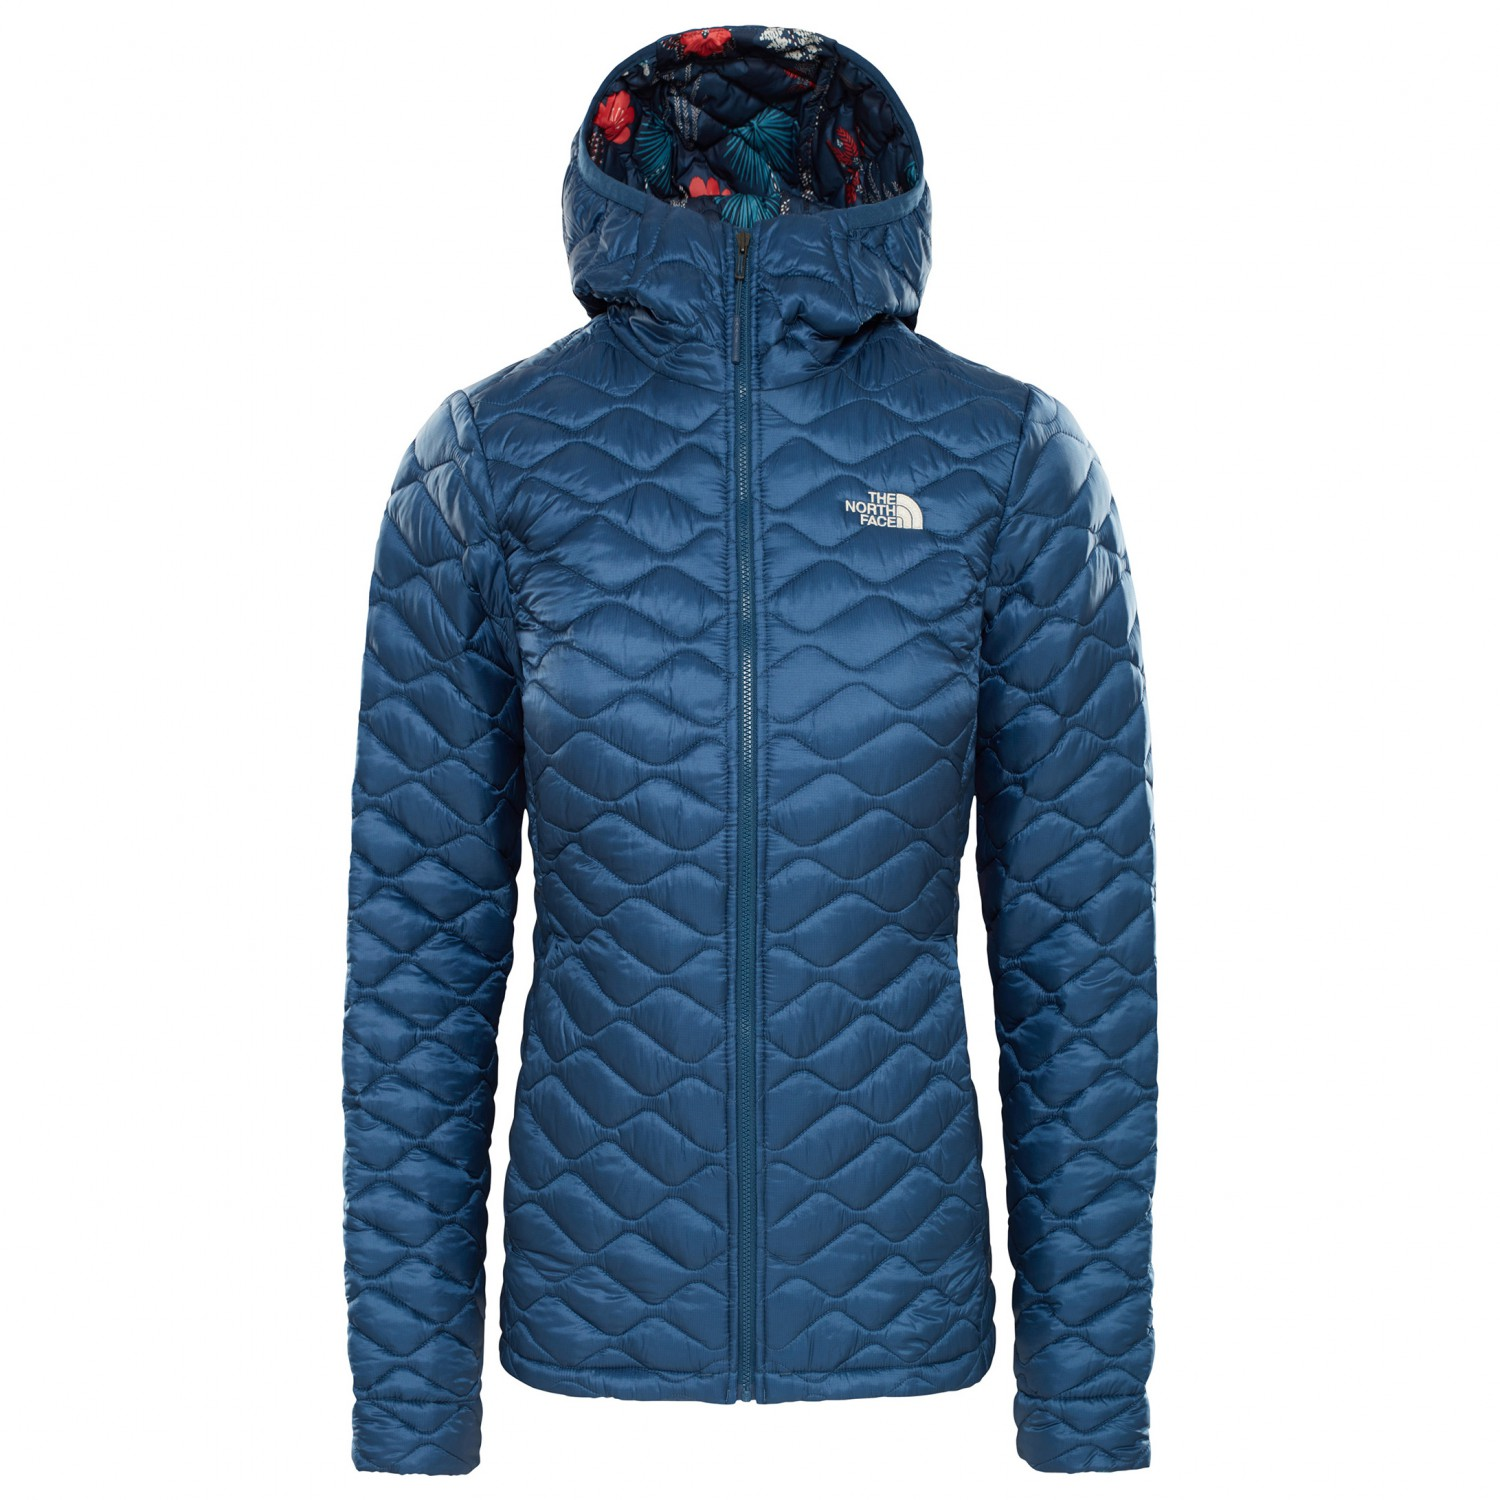 38018dbee5ad The North Face Thermoball Hoodie - Synthetic jacket Women s